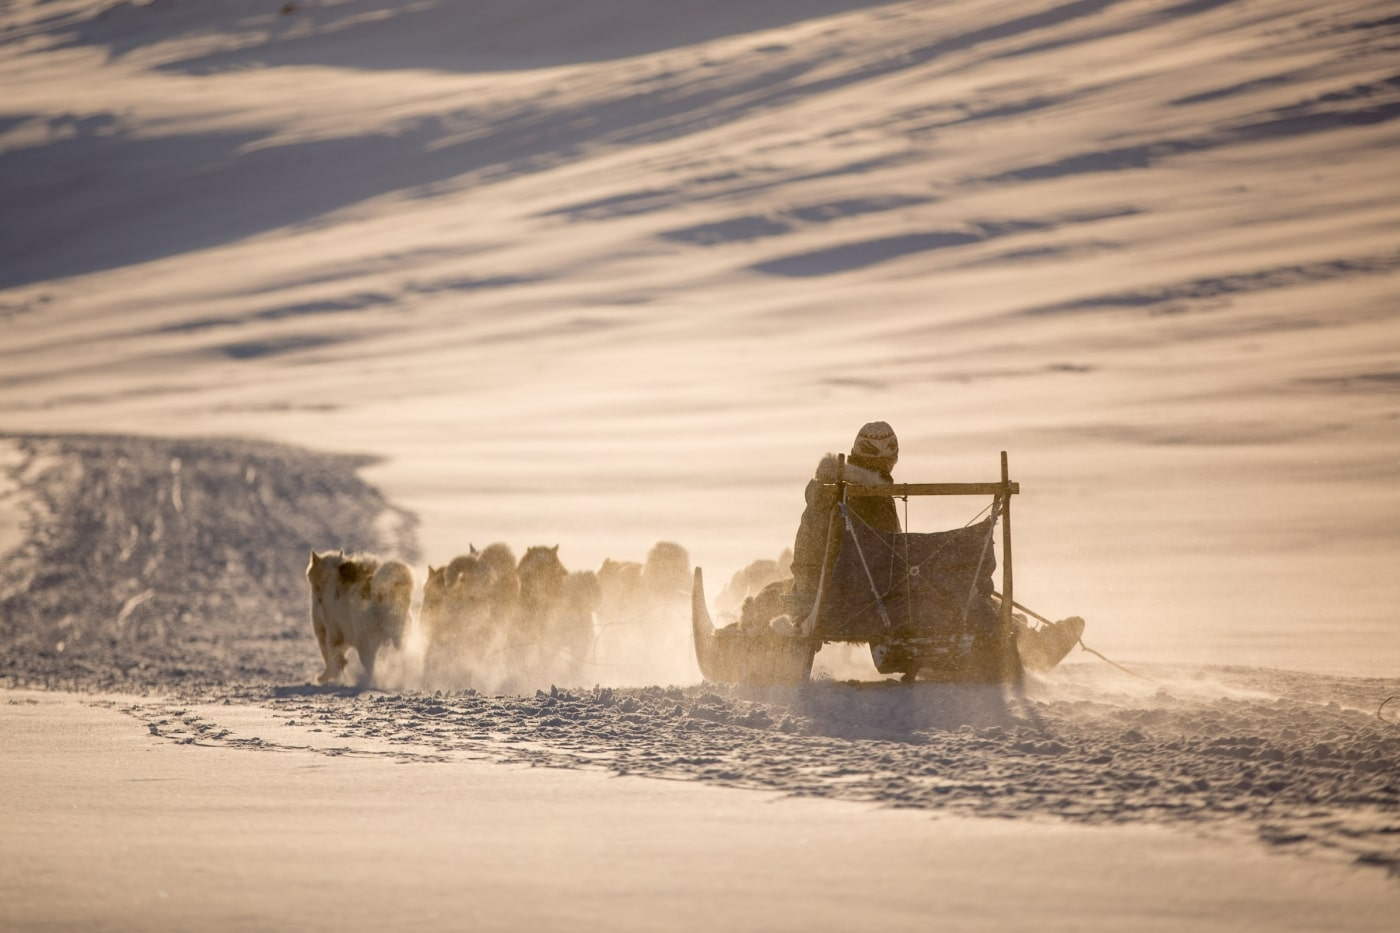 A dog sled heading home towards Sisimiut in Greenland in the setting sun. Photo by Mads Pihl - Visit Greenland.